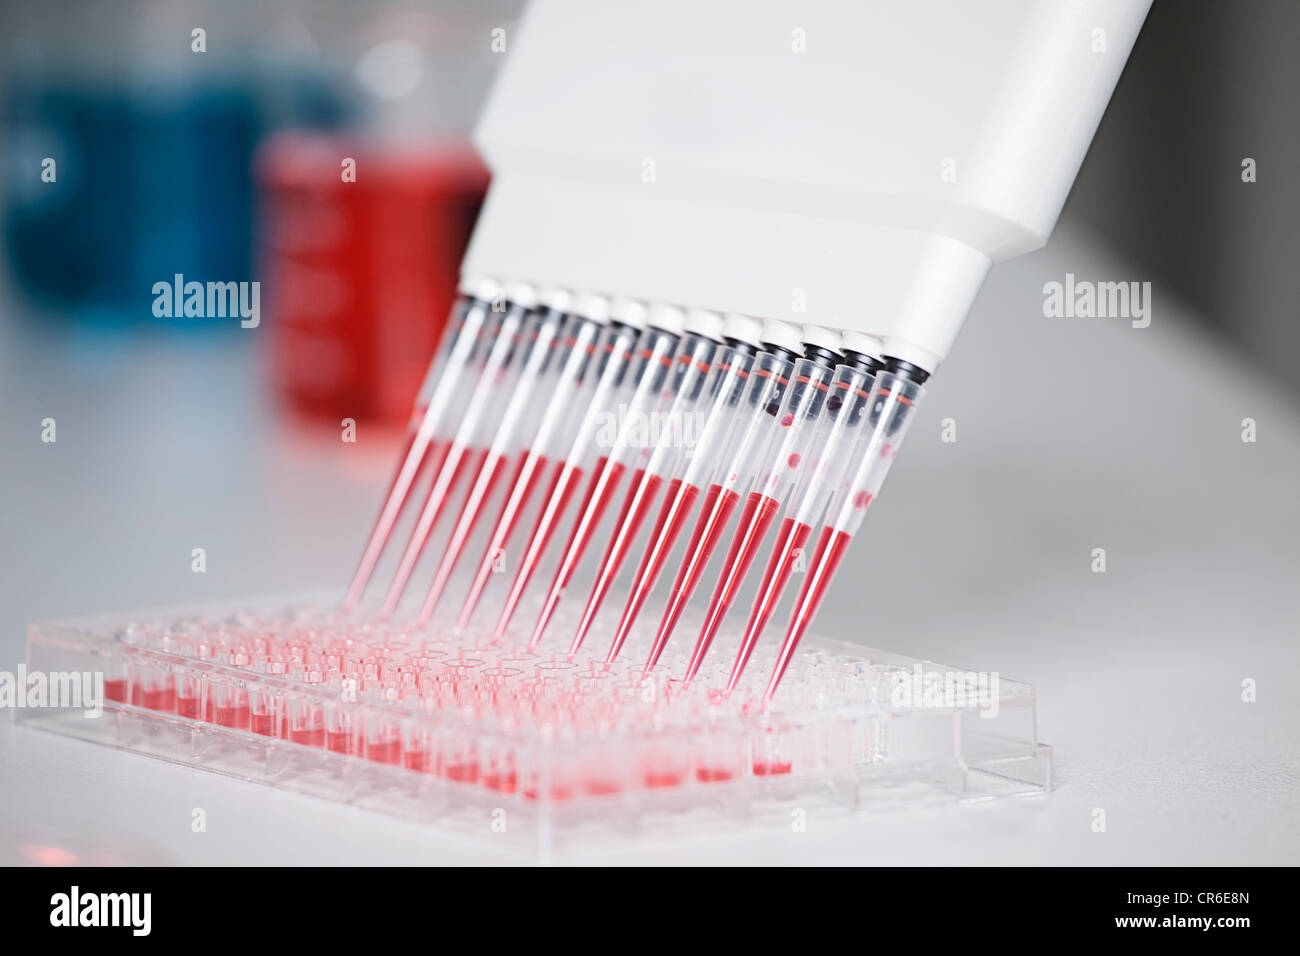 Germany, Bavaria, Munich, Multichannel pipette dispensing red reagent into test tray for medical research - Stock Image